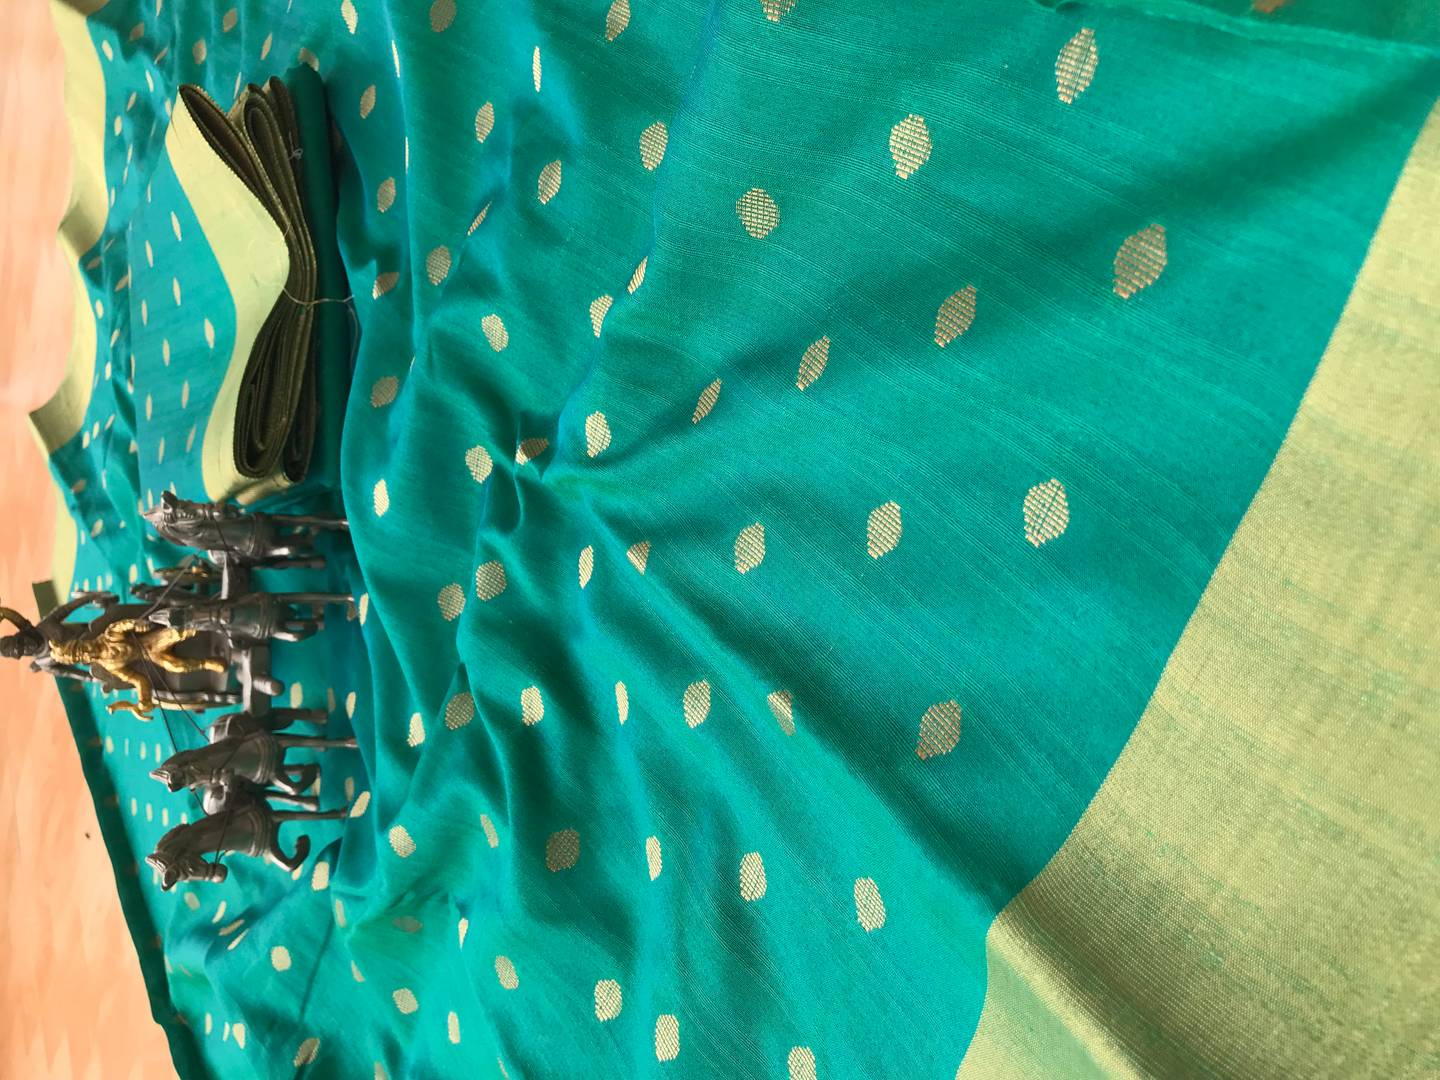 Blue Jacquard Cotton Banarasi Silk Saree with Blouse piece